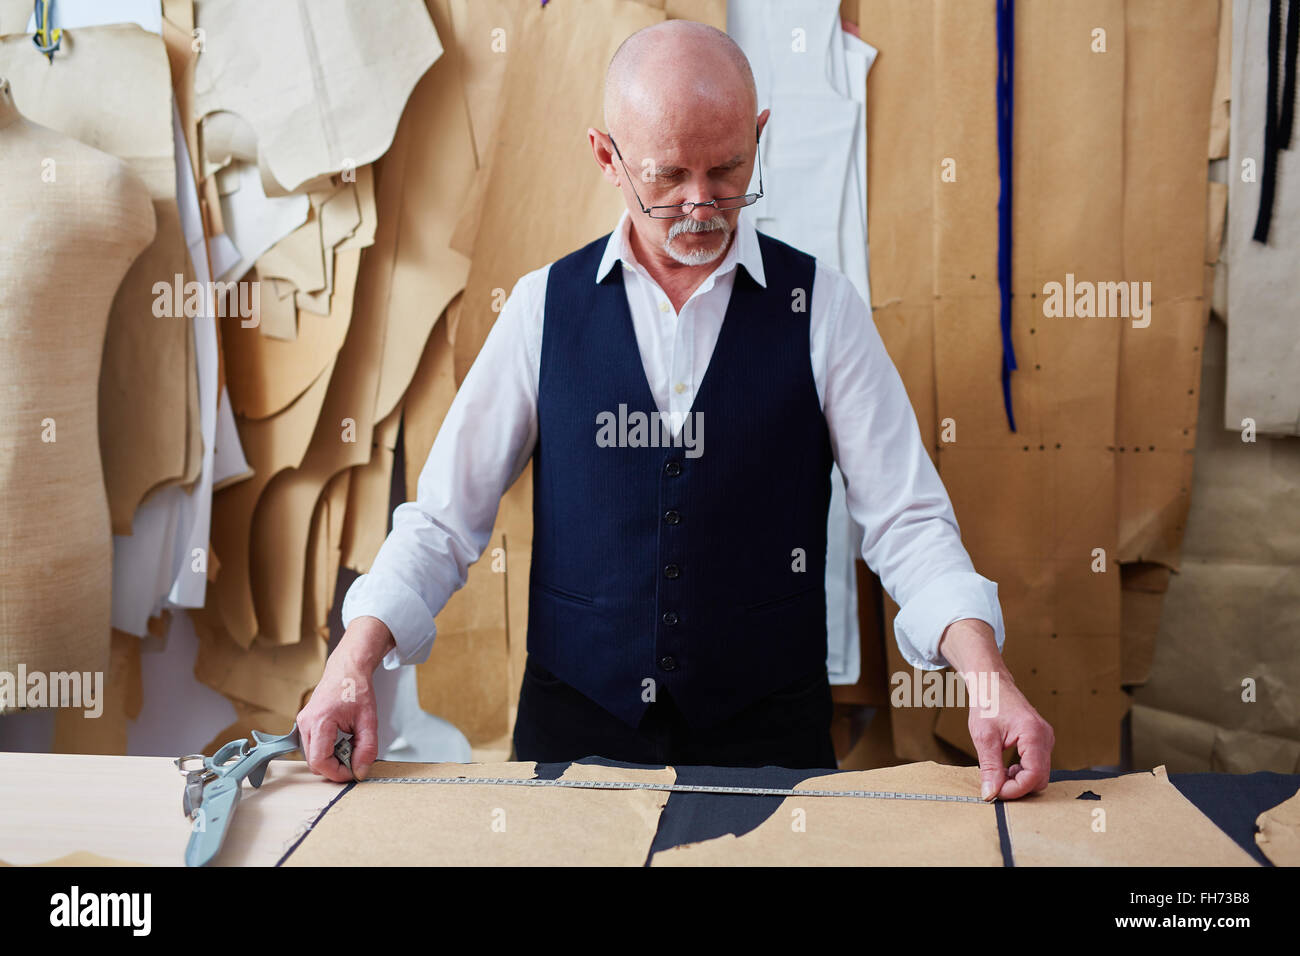 Mature tailor working with patterns and measuring tape - Stock Image